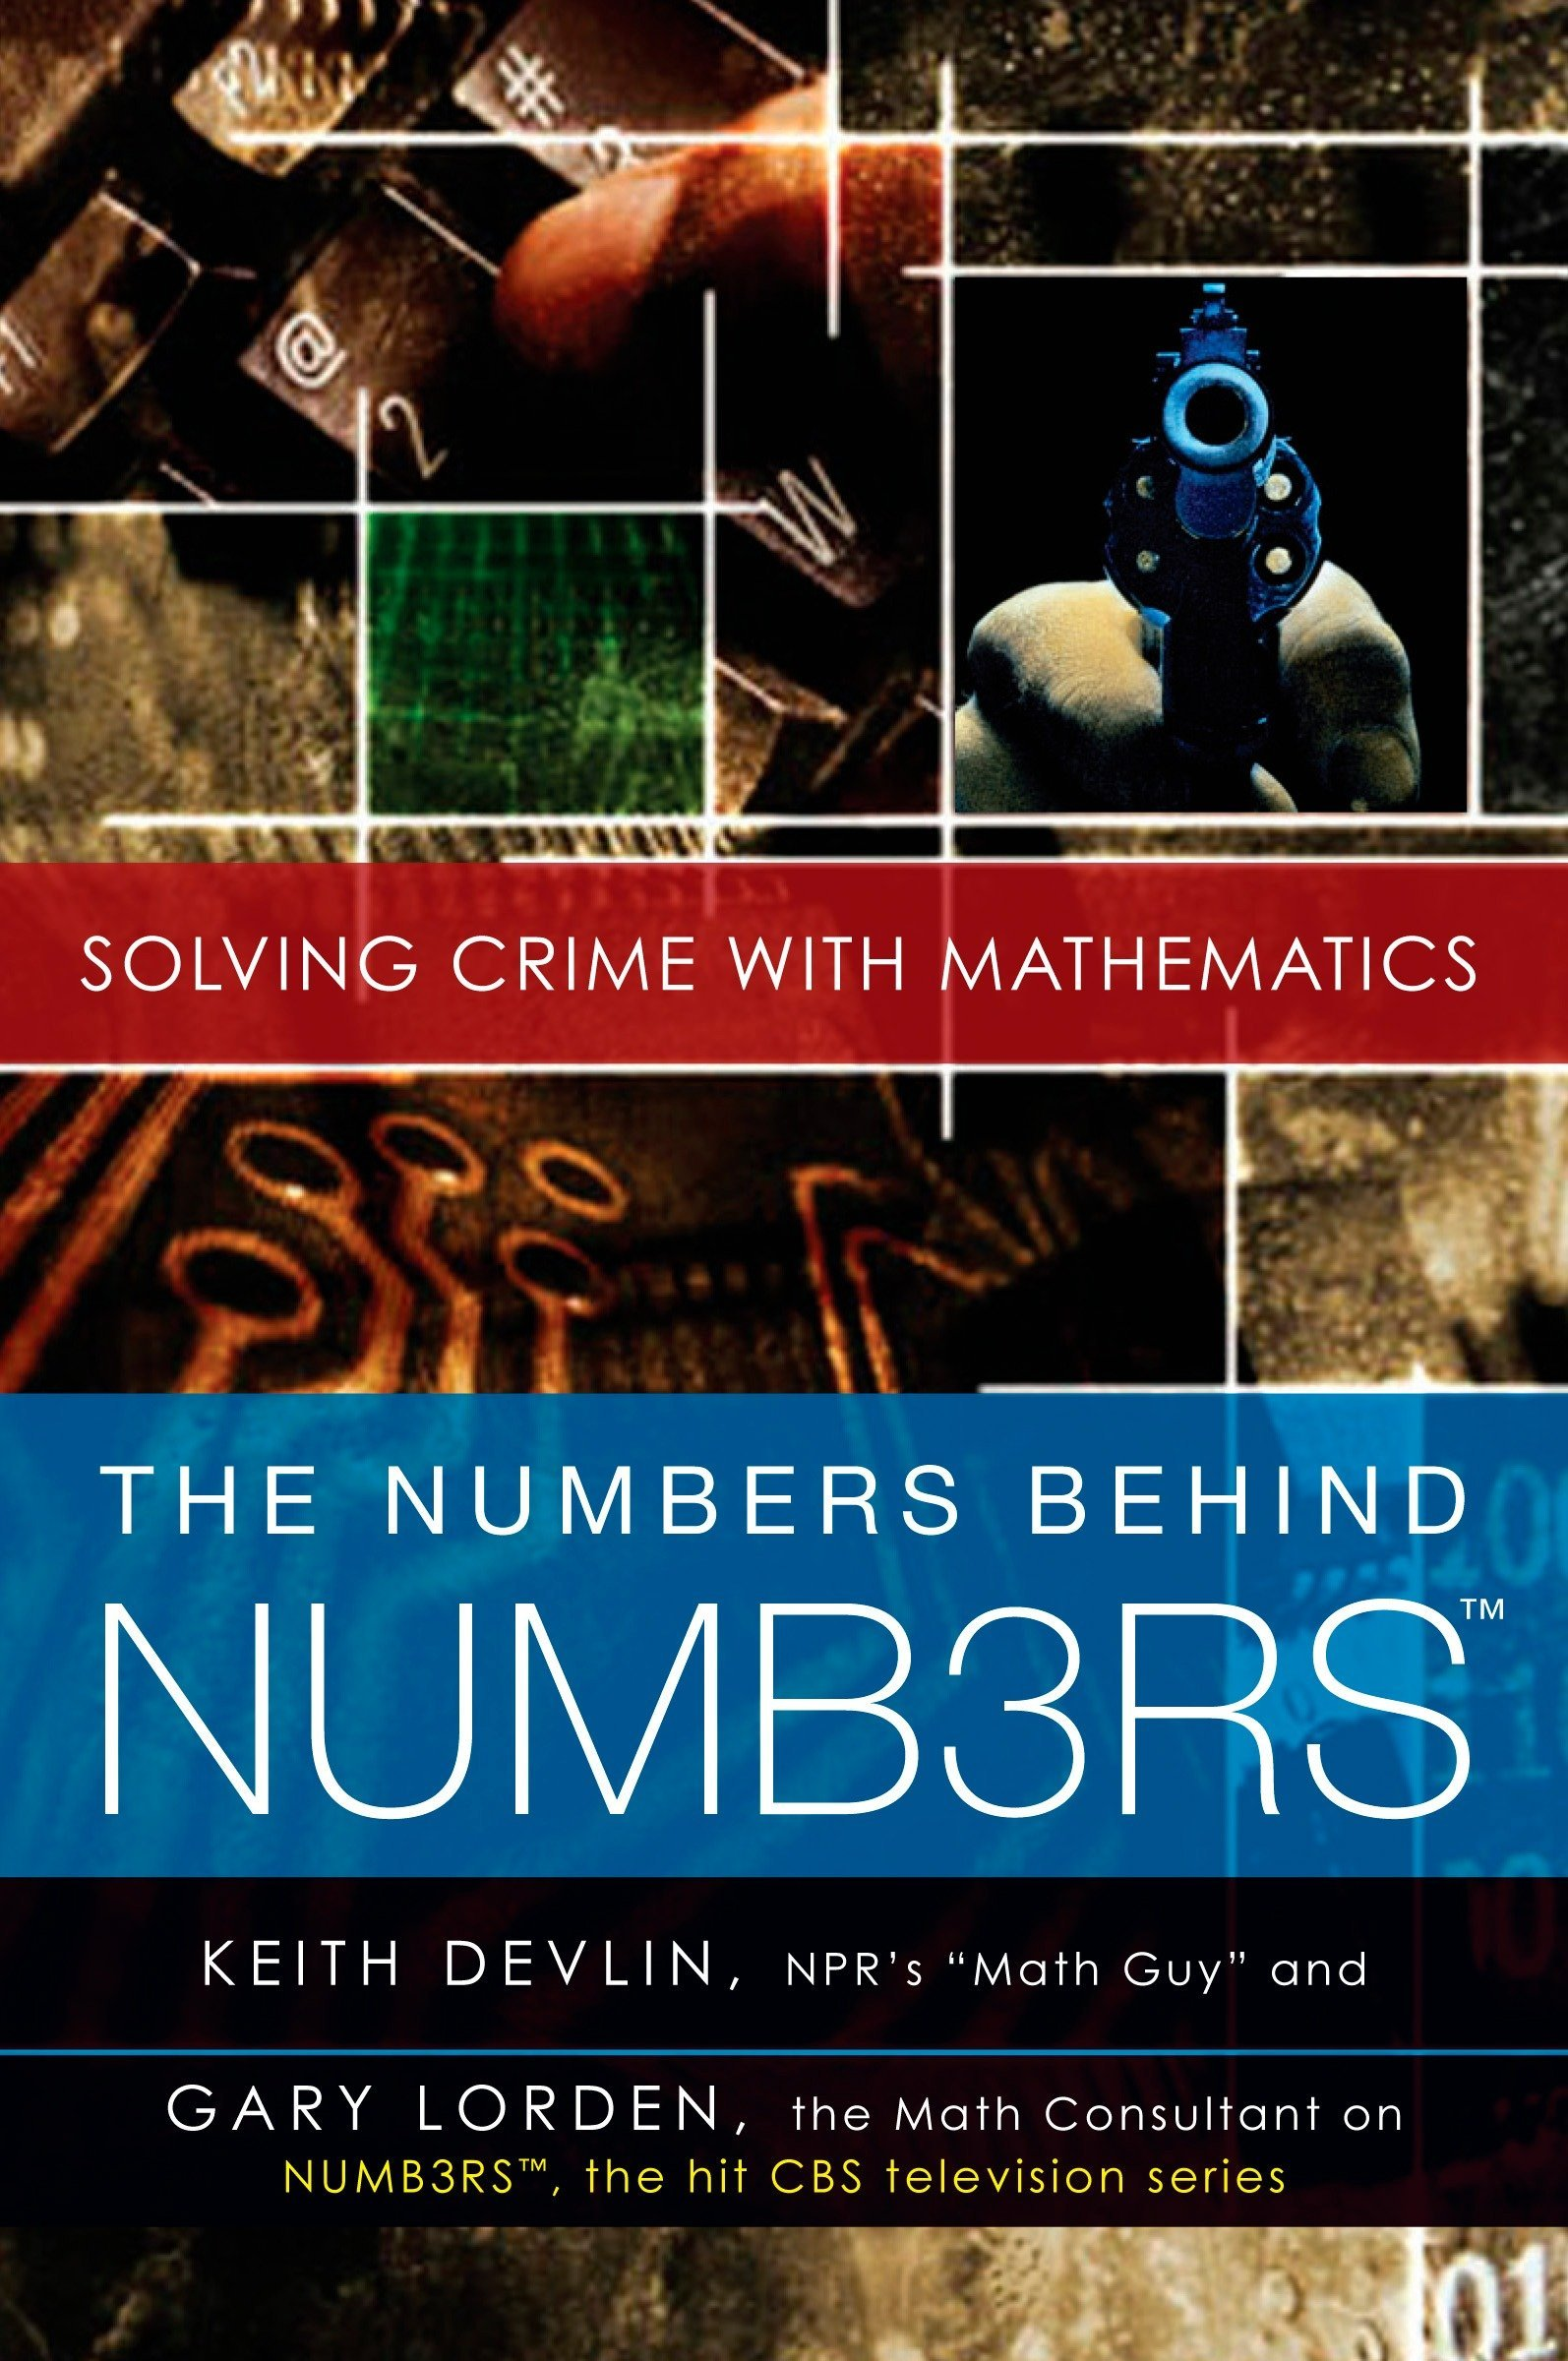 Book cover of The Numbers Behind NUMB3RS by Keith J. Devlin and Gary Lorden